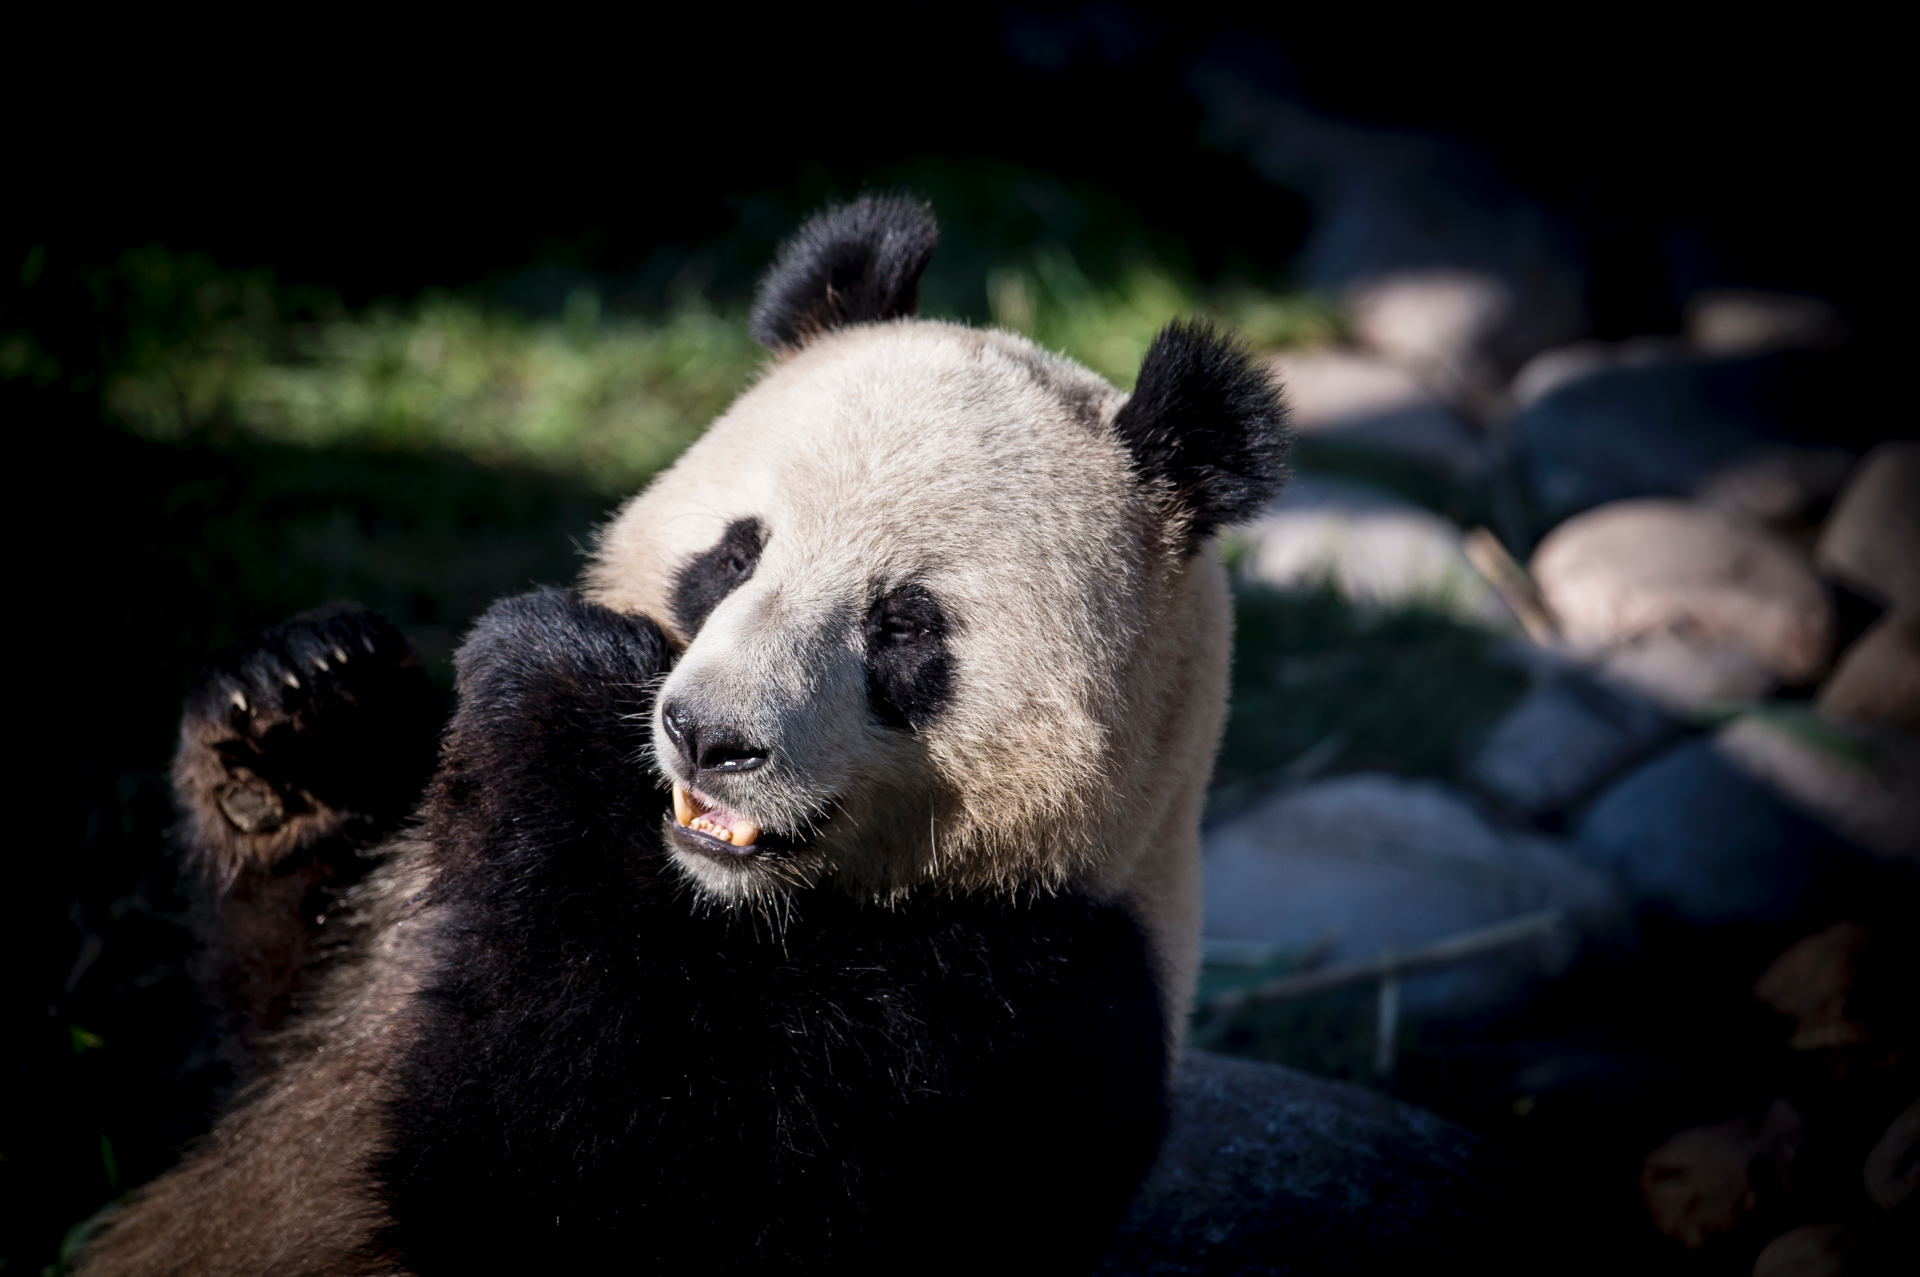 Danes rush to see pandas on loan from China